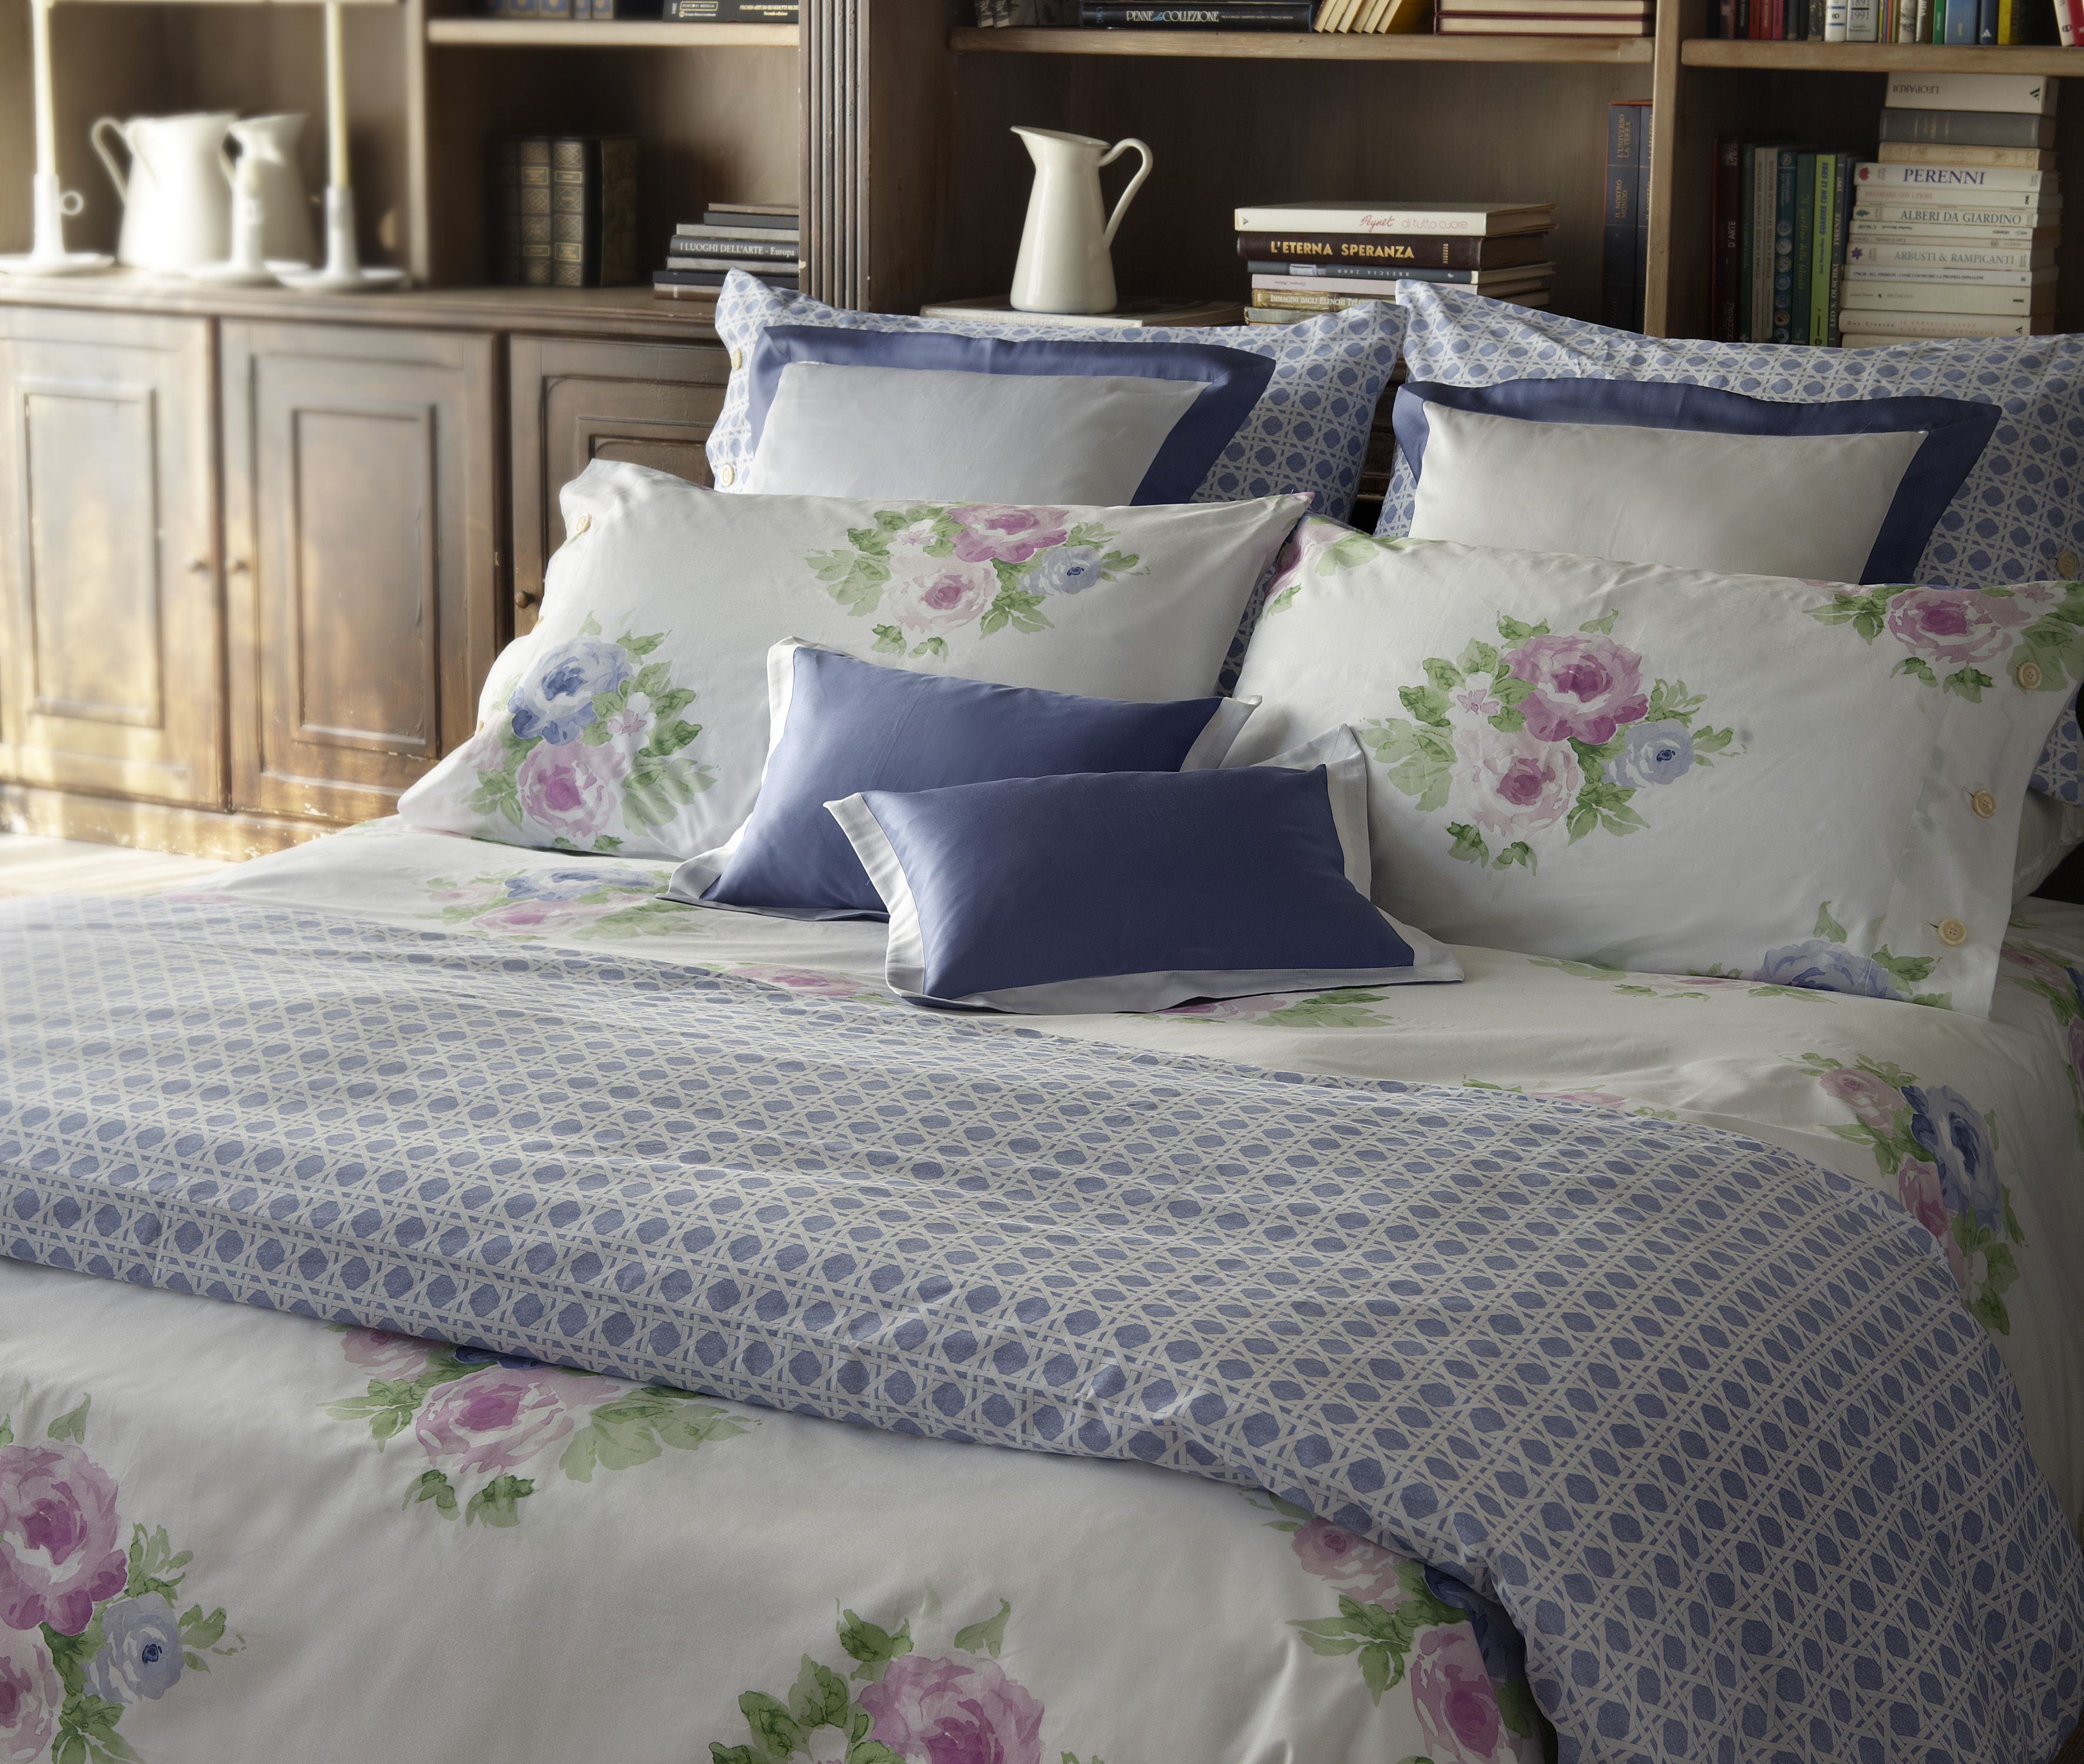 Biancheria Da Letto Estiva Bellora Spring Summer 2015 Bedding Sets With Floral